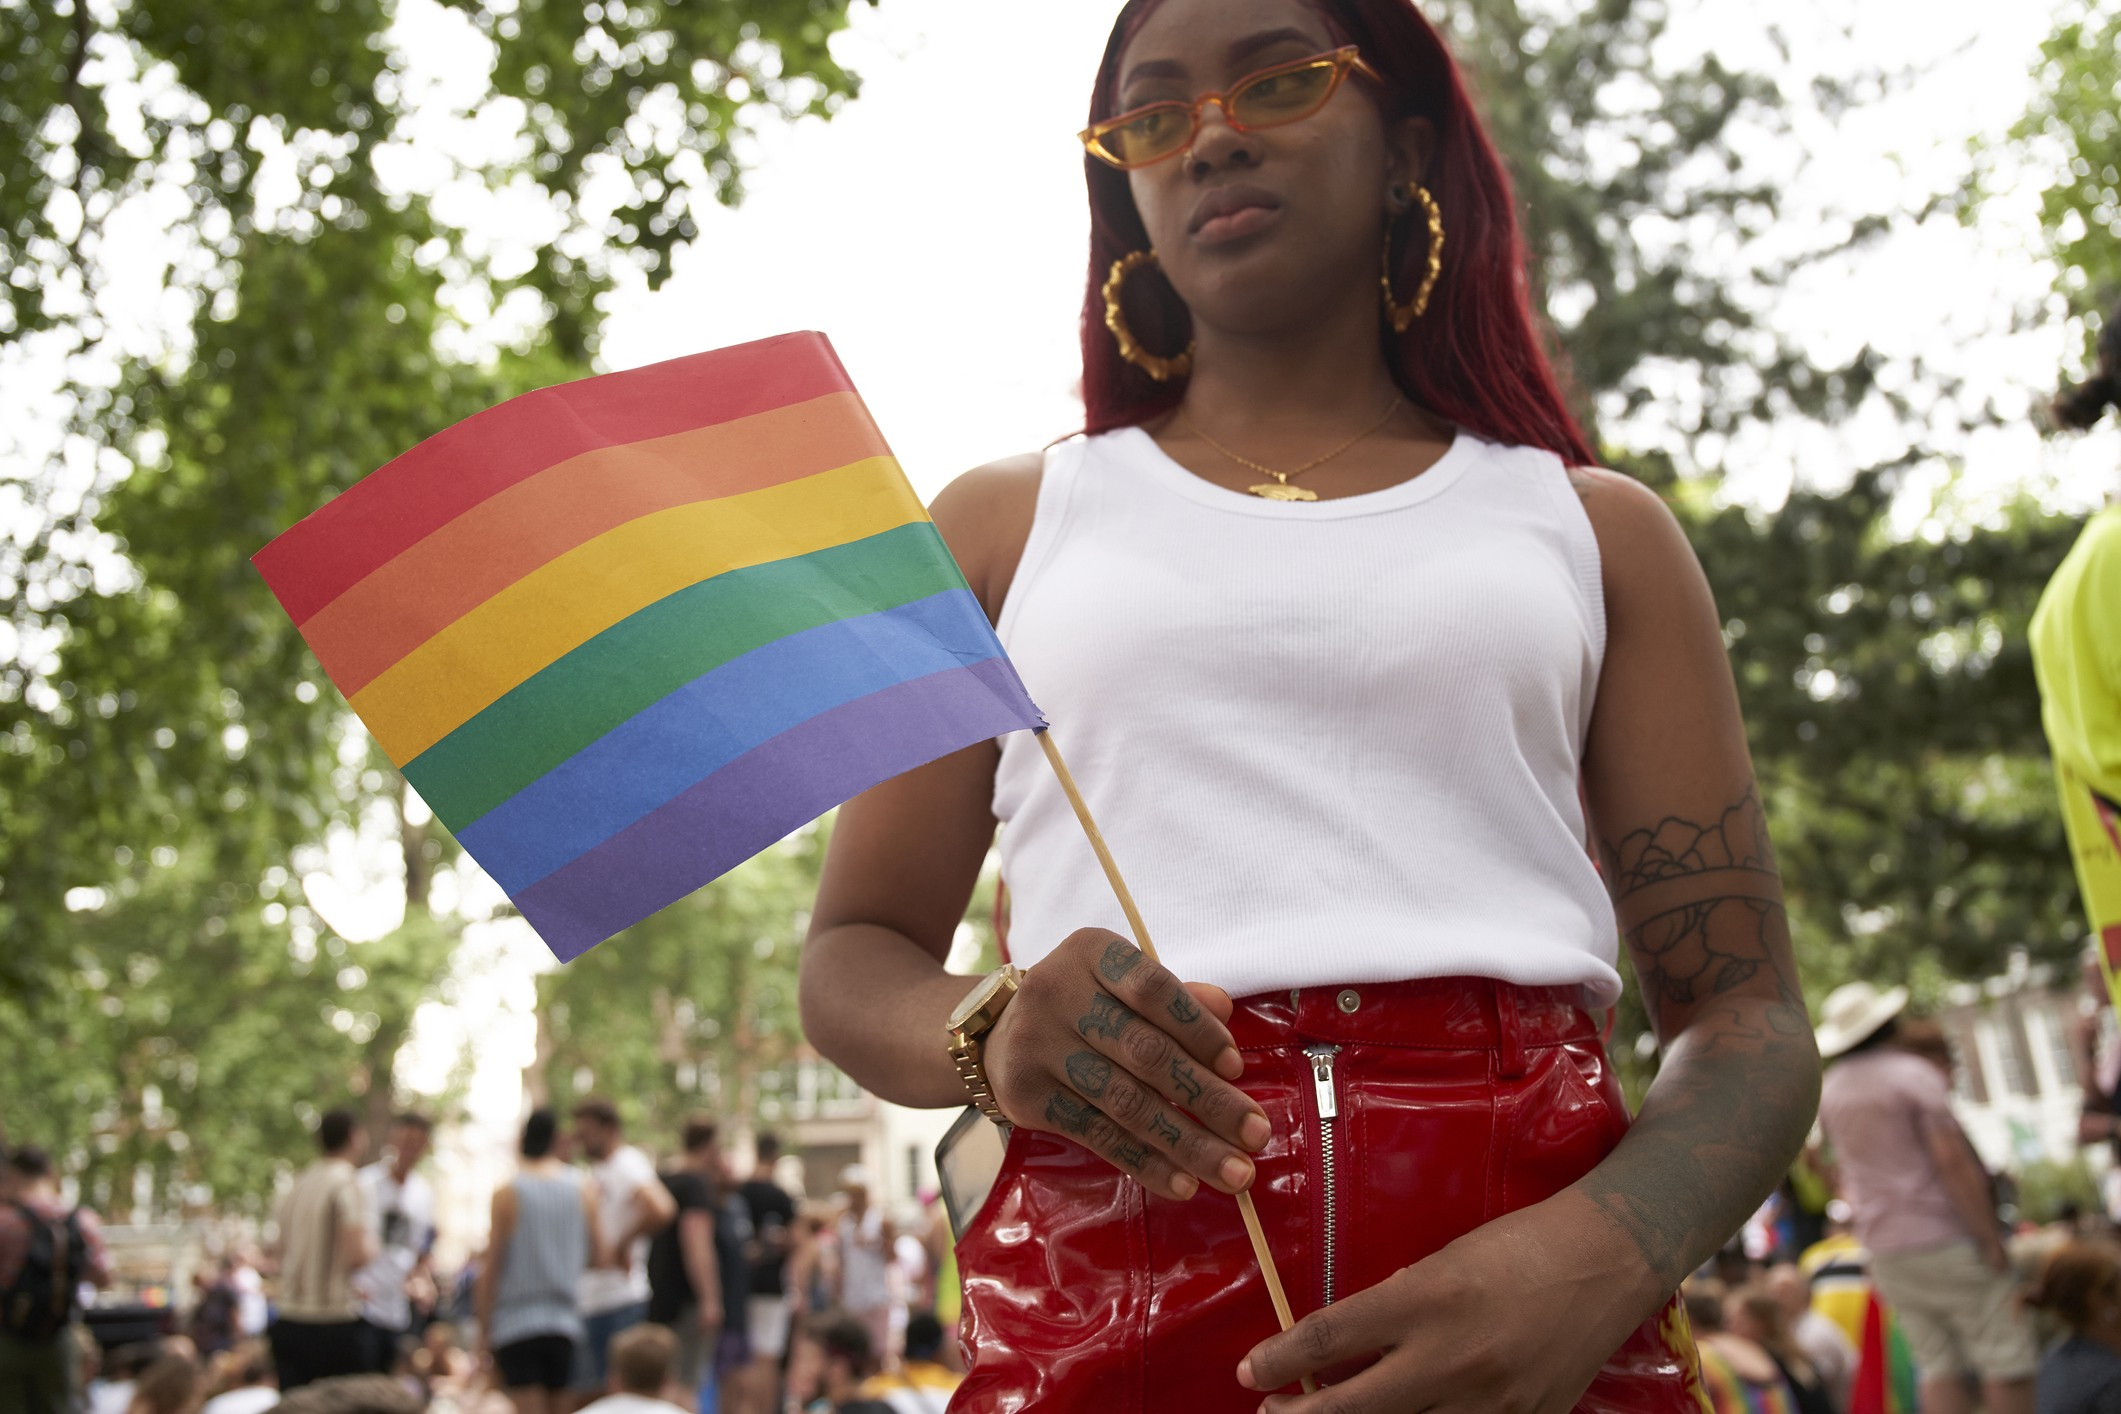 A young black woman holds up a rainbow flag at an outdoor gathering.